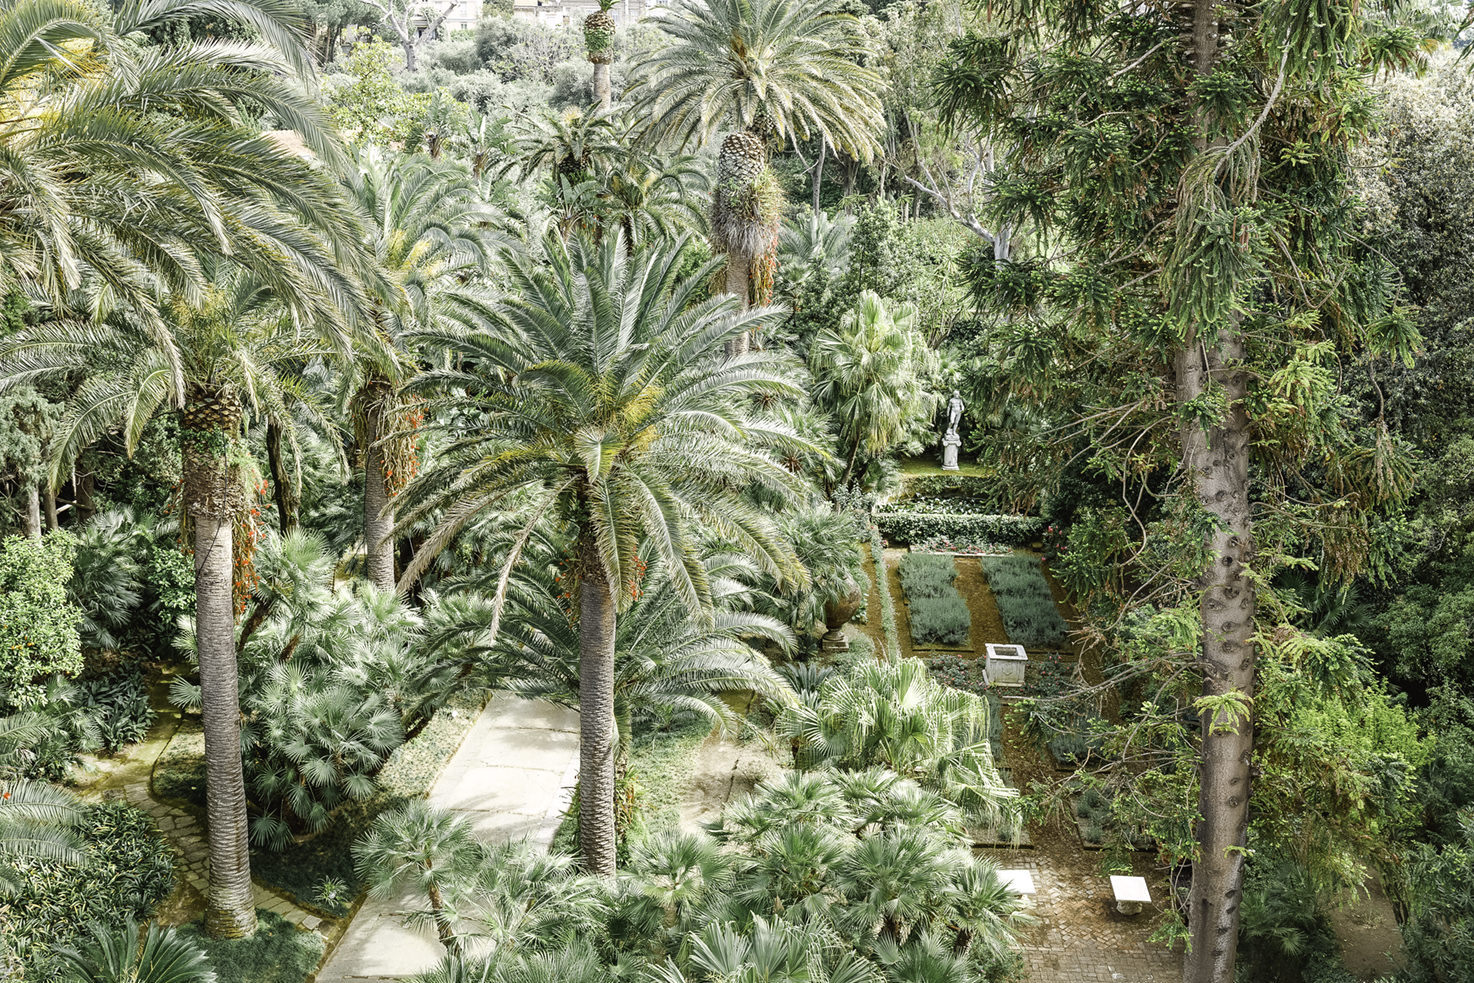 Palm trees in the gardens